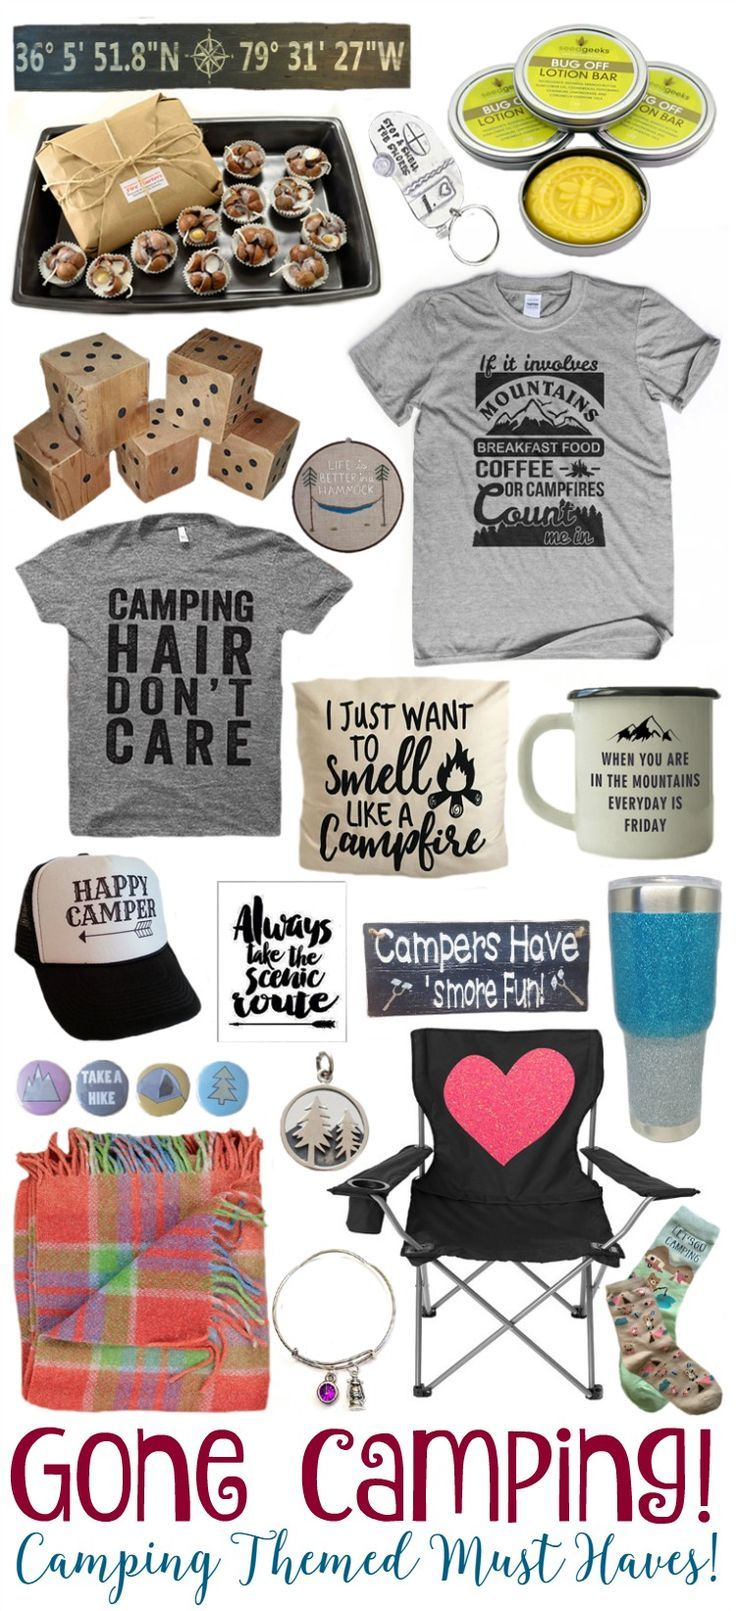 T-shirt and socks ❤️❤️❤️ Camping Themed Must Haves! - http://BusyBeingJennifer.com